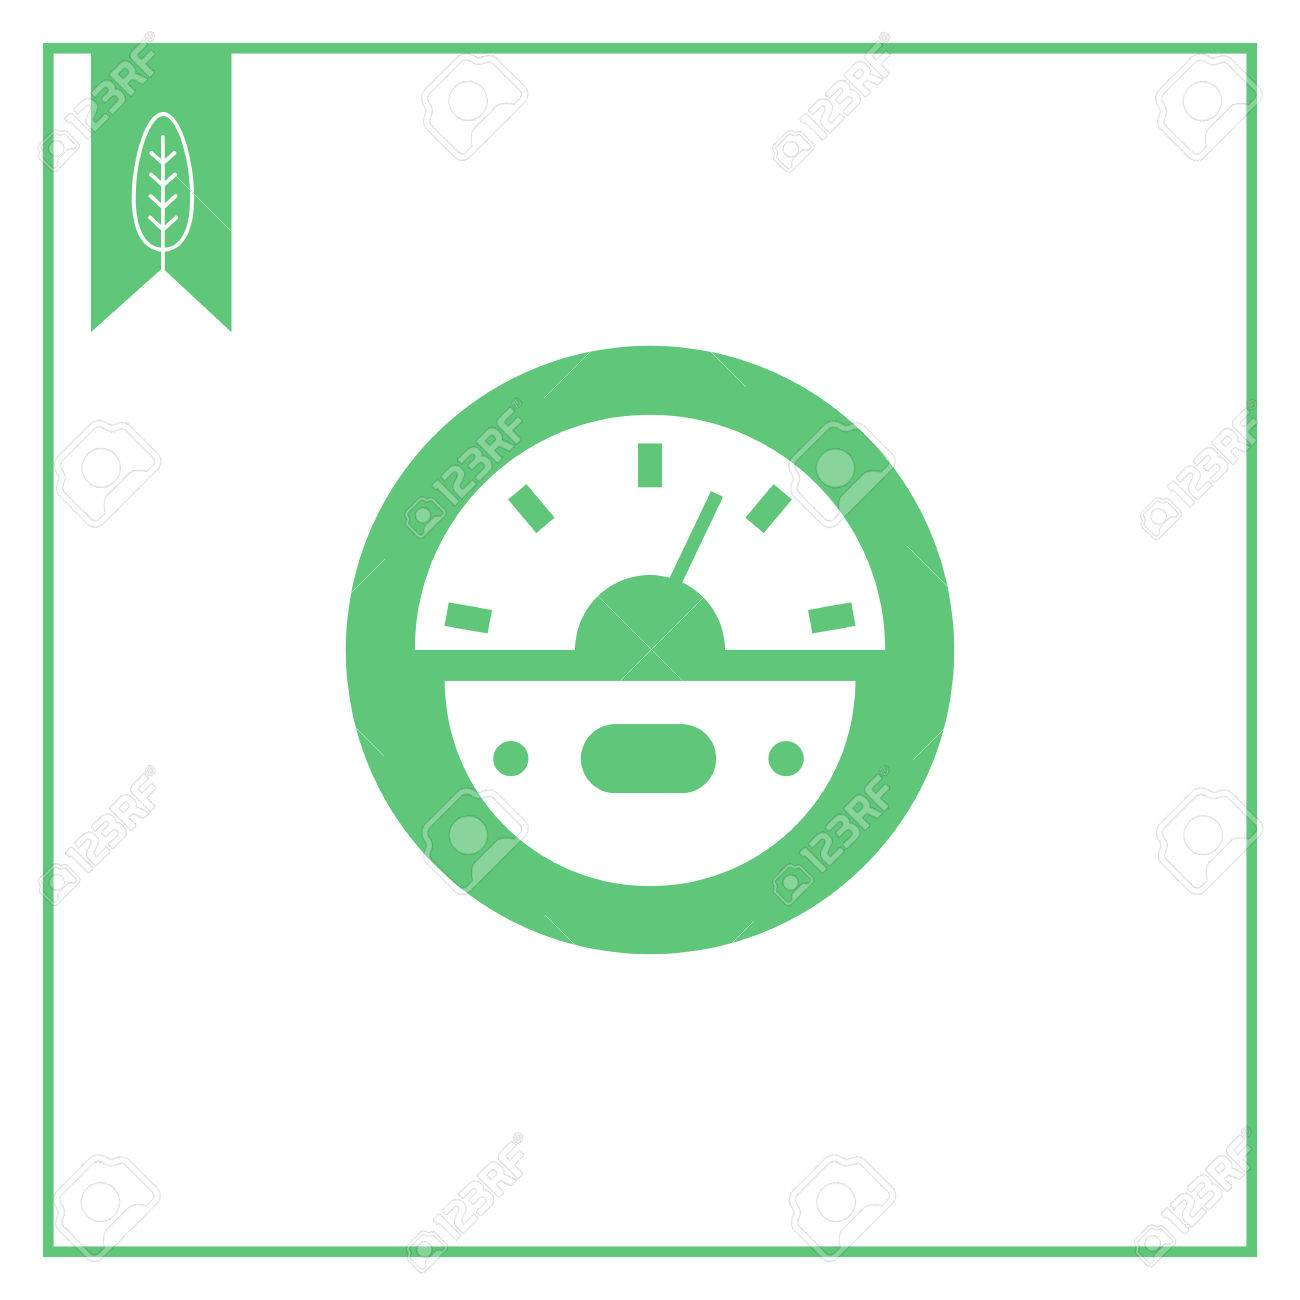 Fine Ohmmeter Symbol Elaboration - Electrical and Wiring Diagram ...